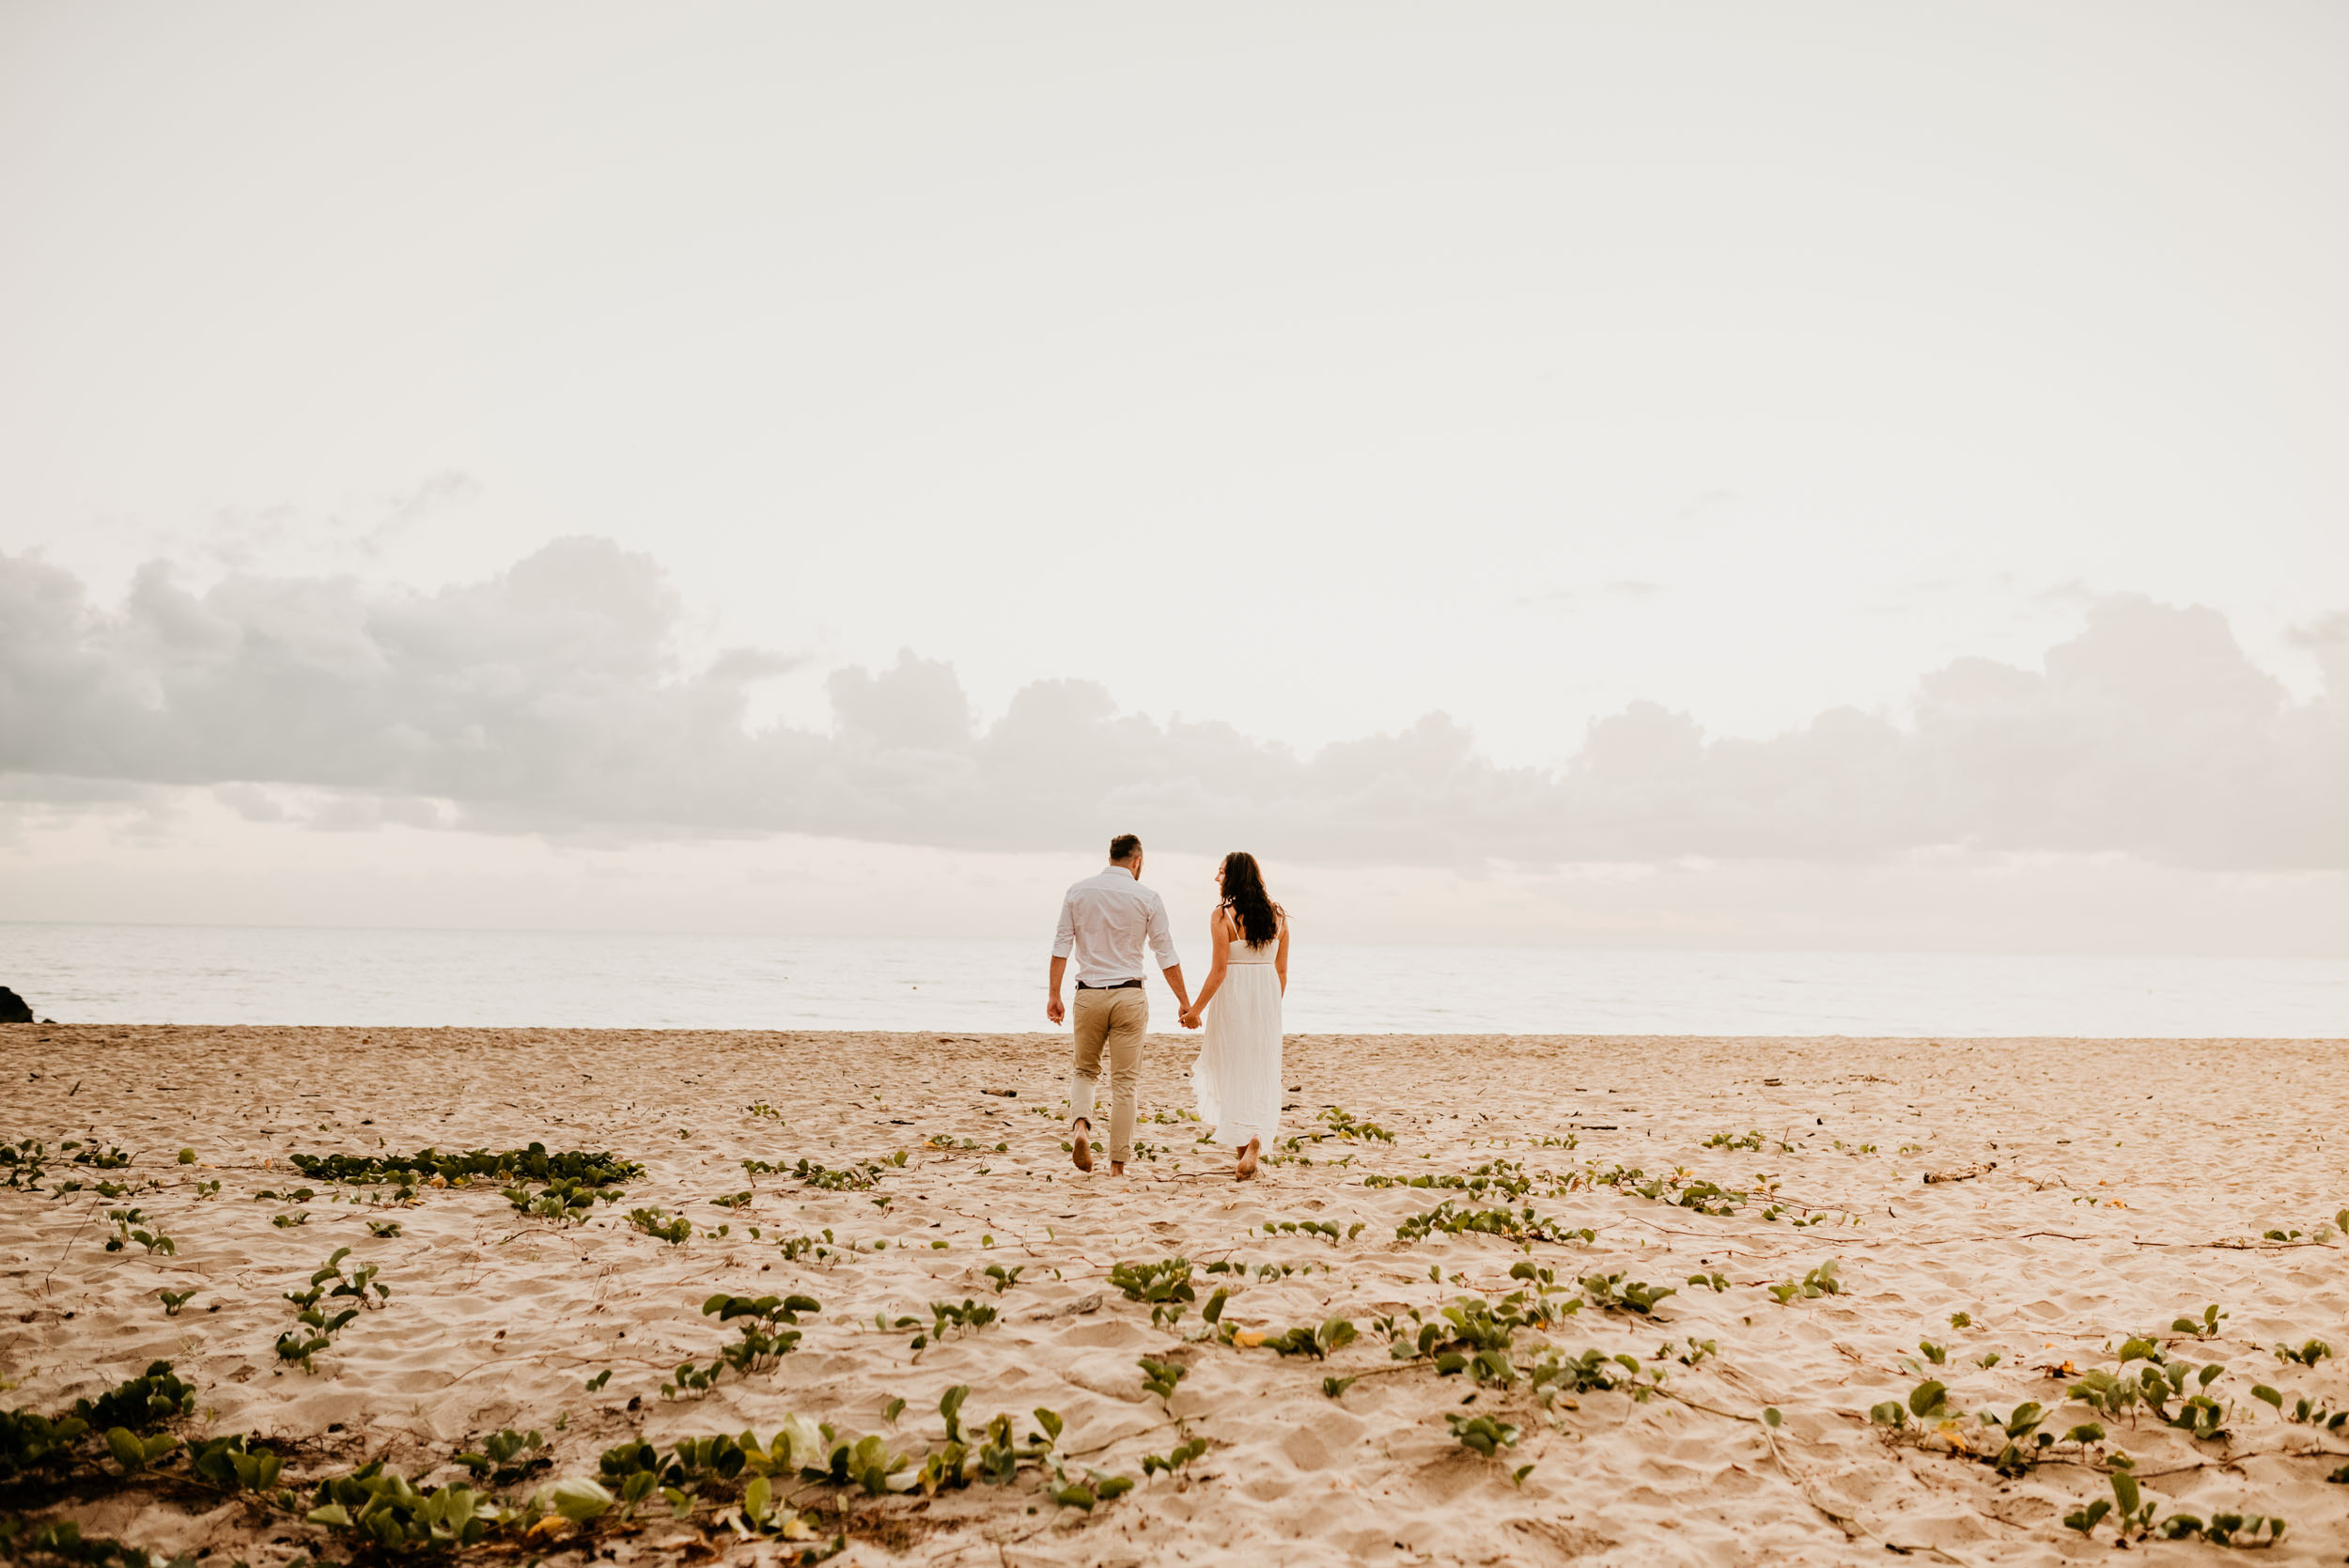 The Raw Photographer - Cairns Wedding Photographer - Engaged Engagement - Beach location - Candid Photography Queensland-1.jpg